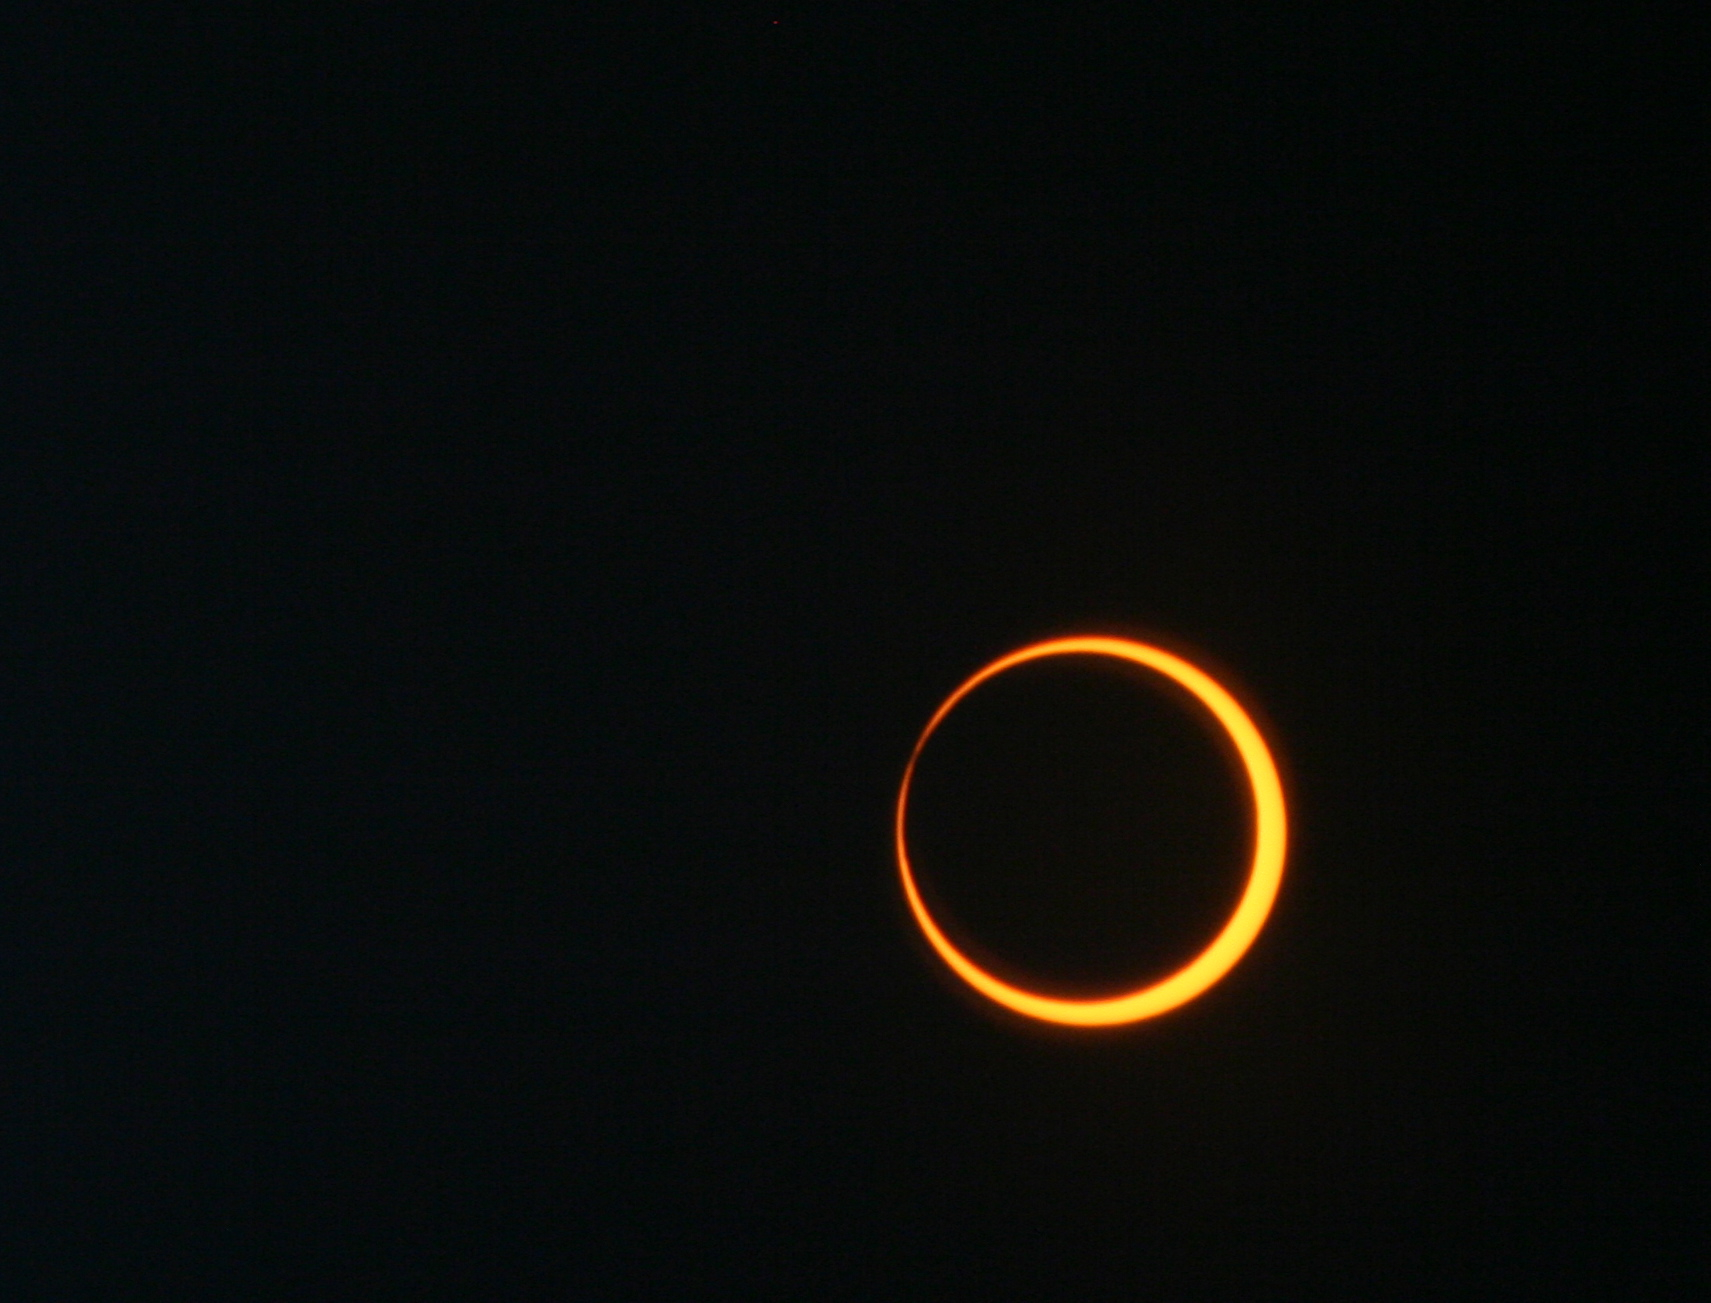 orange ring of Sun, mostly blocked by black moon